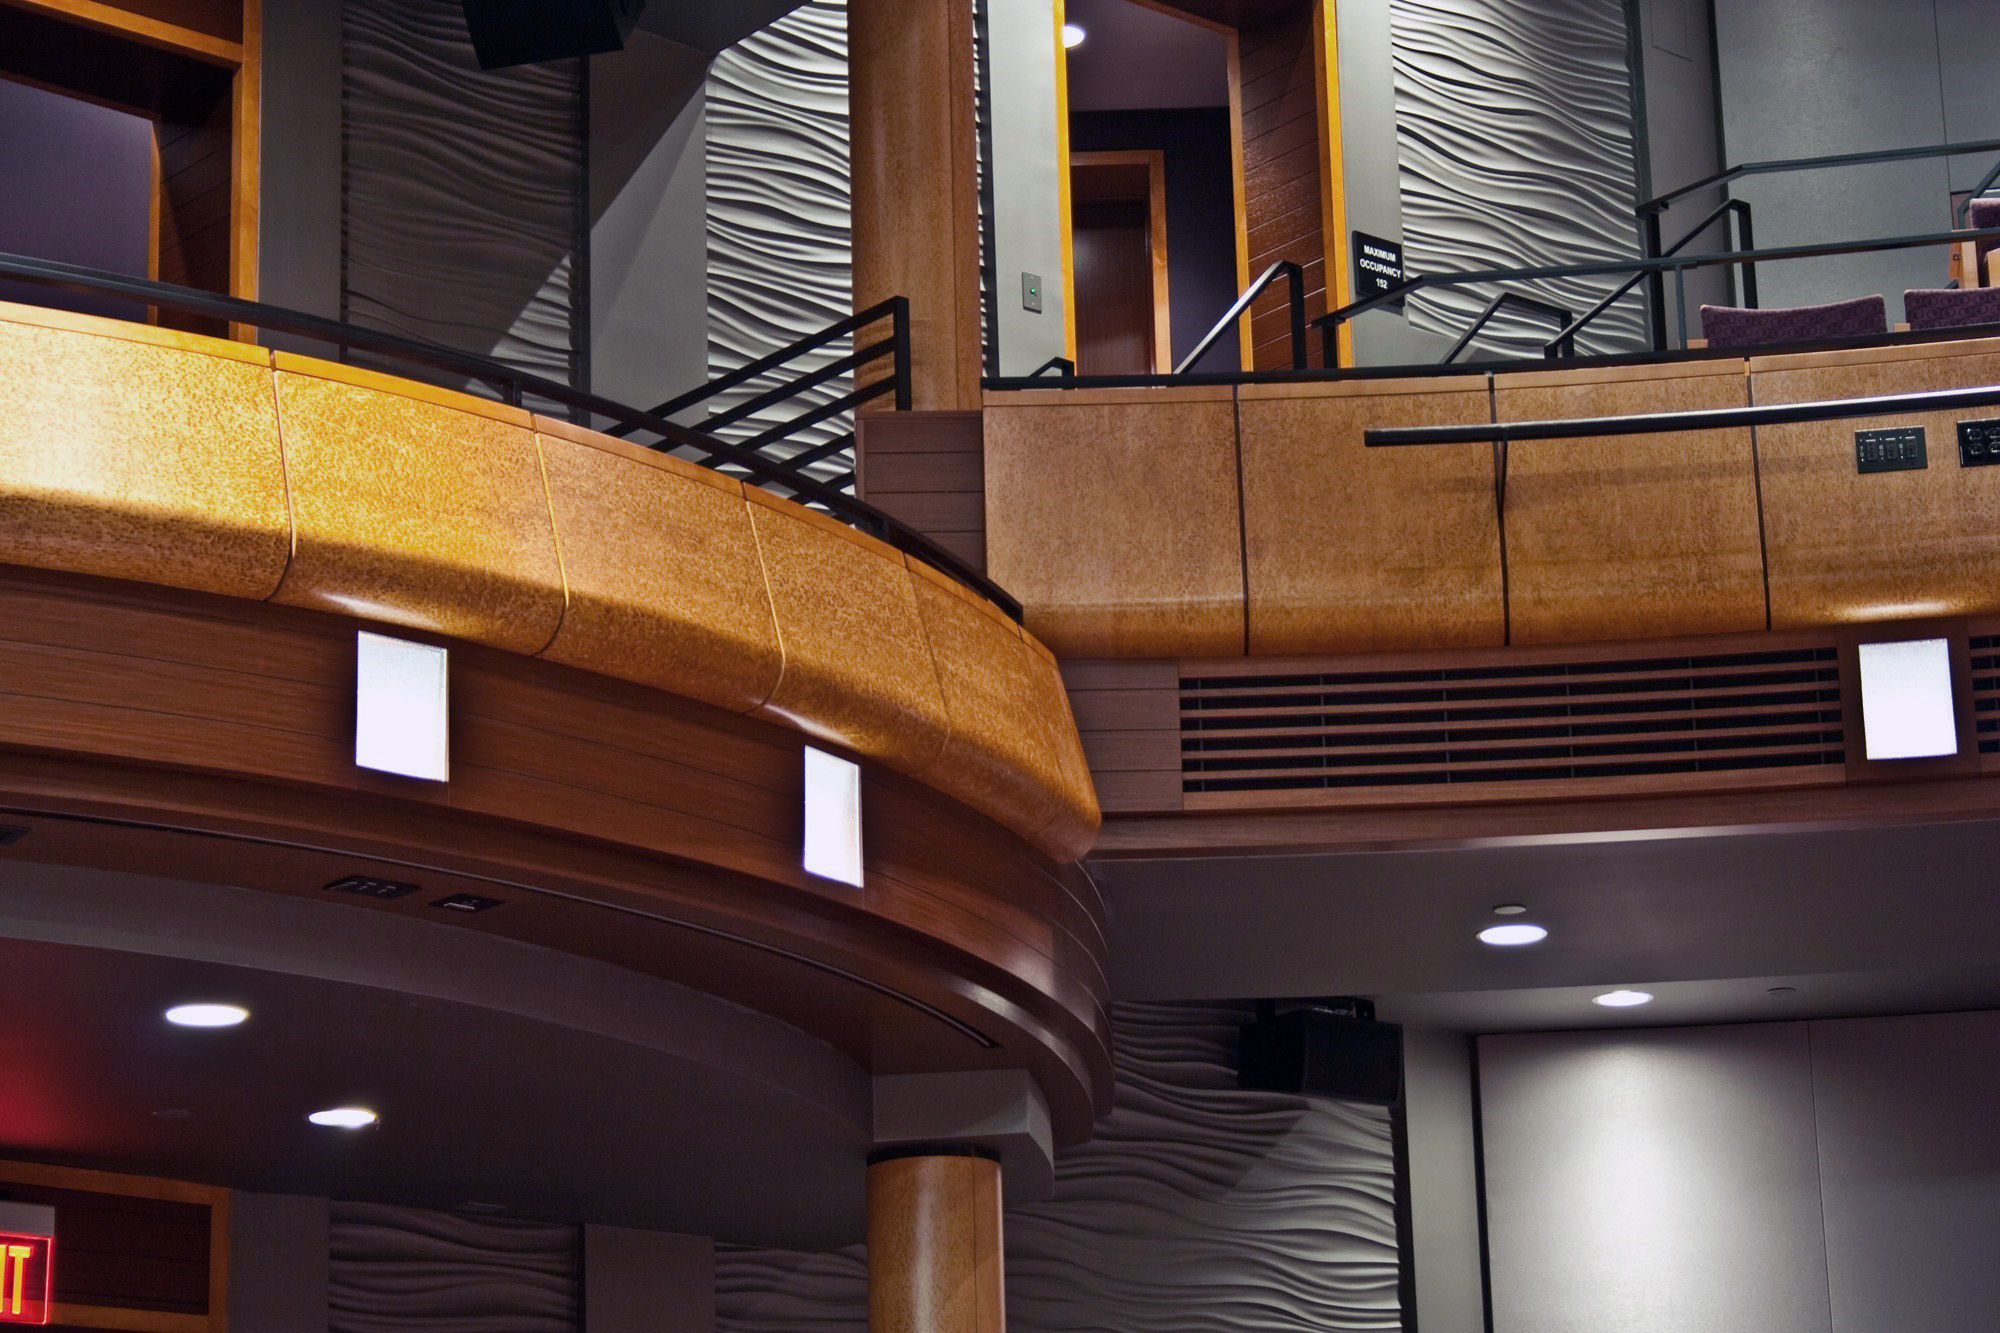 ... the Performing Arts – Main Stage Theatre | Lantz Custom Woodworking